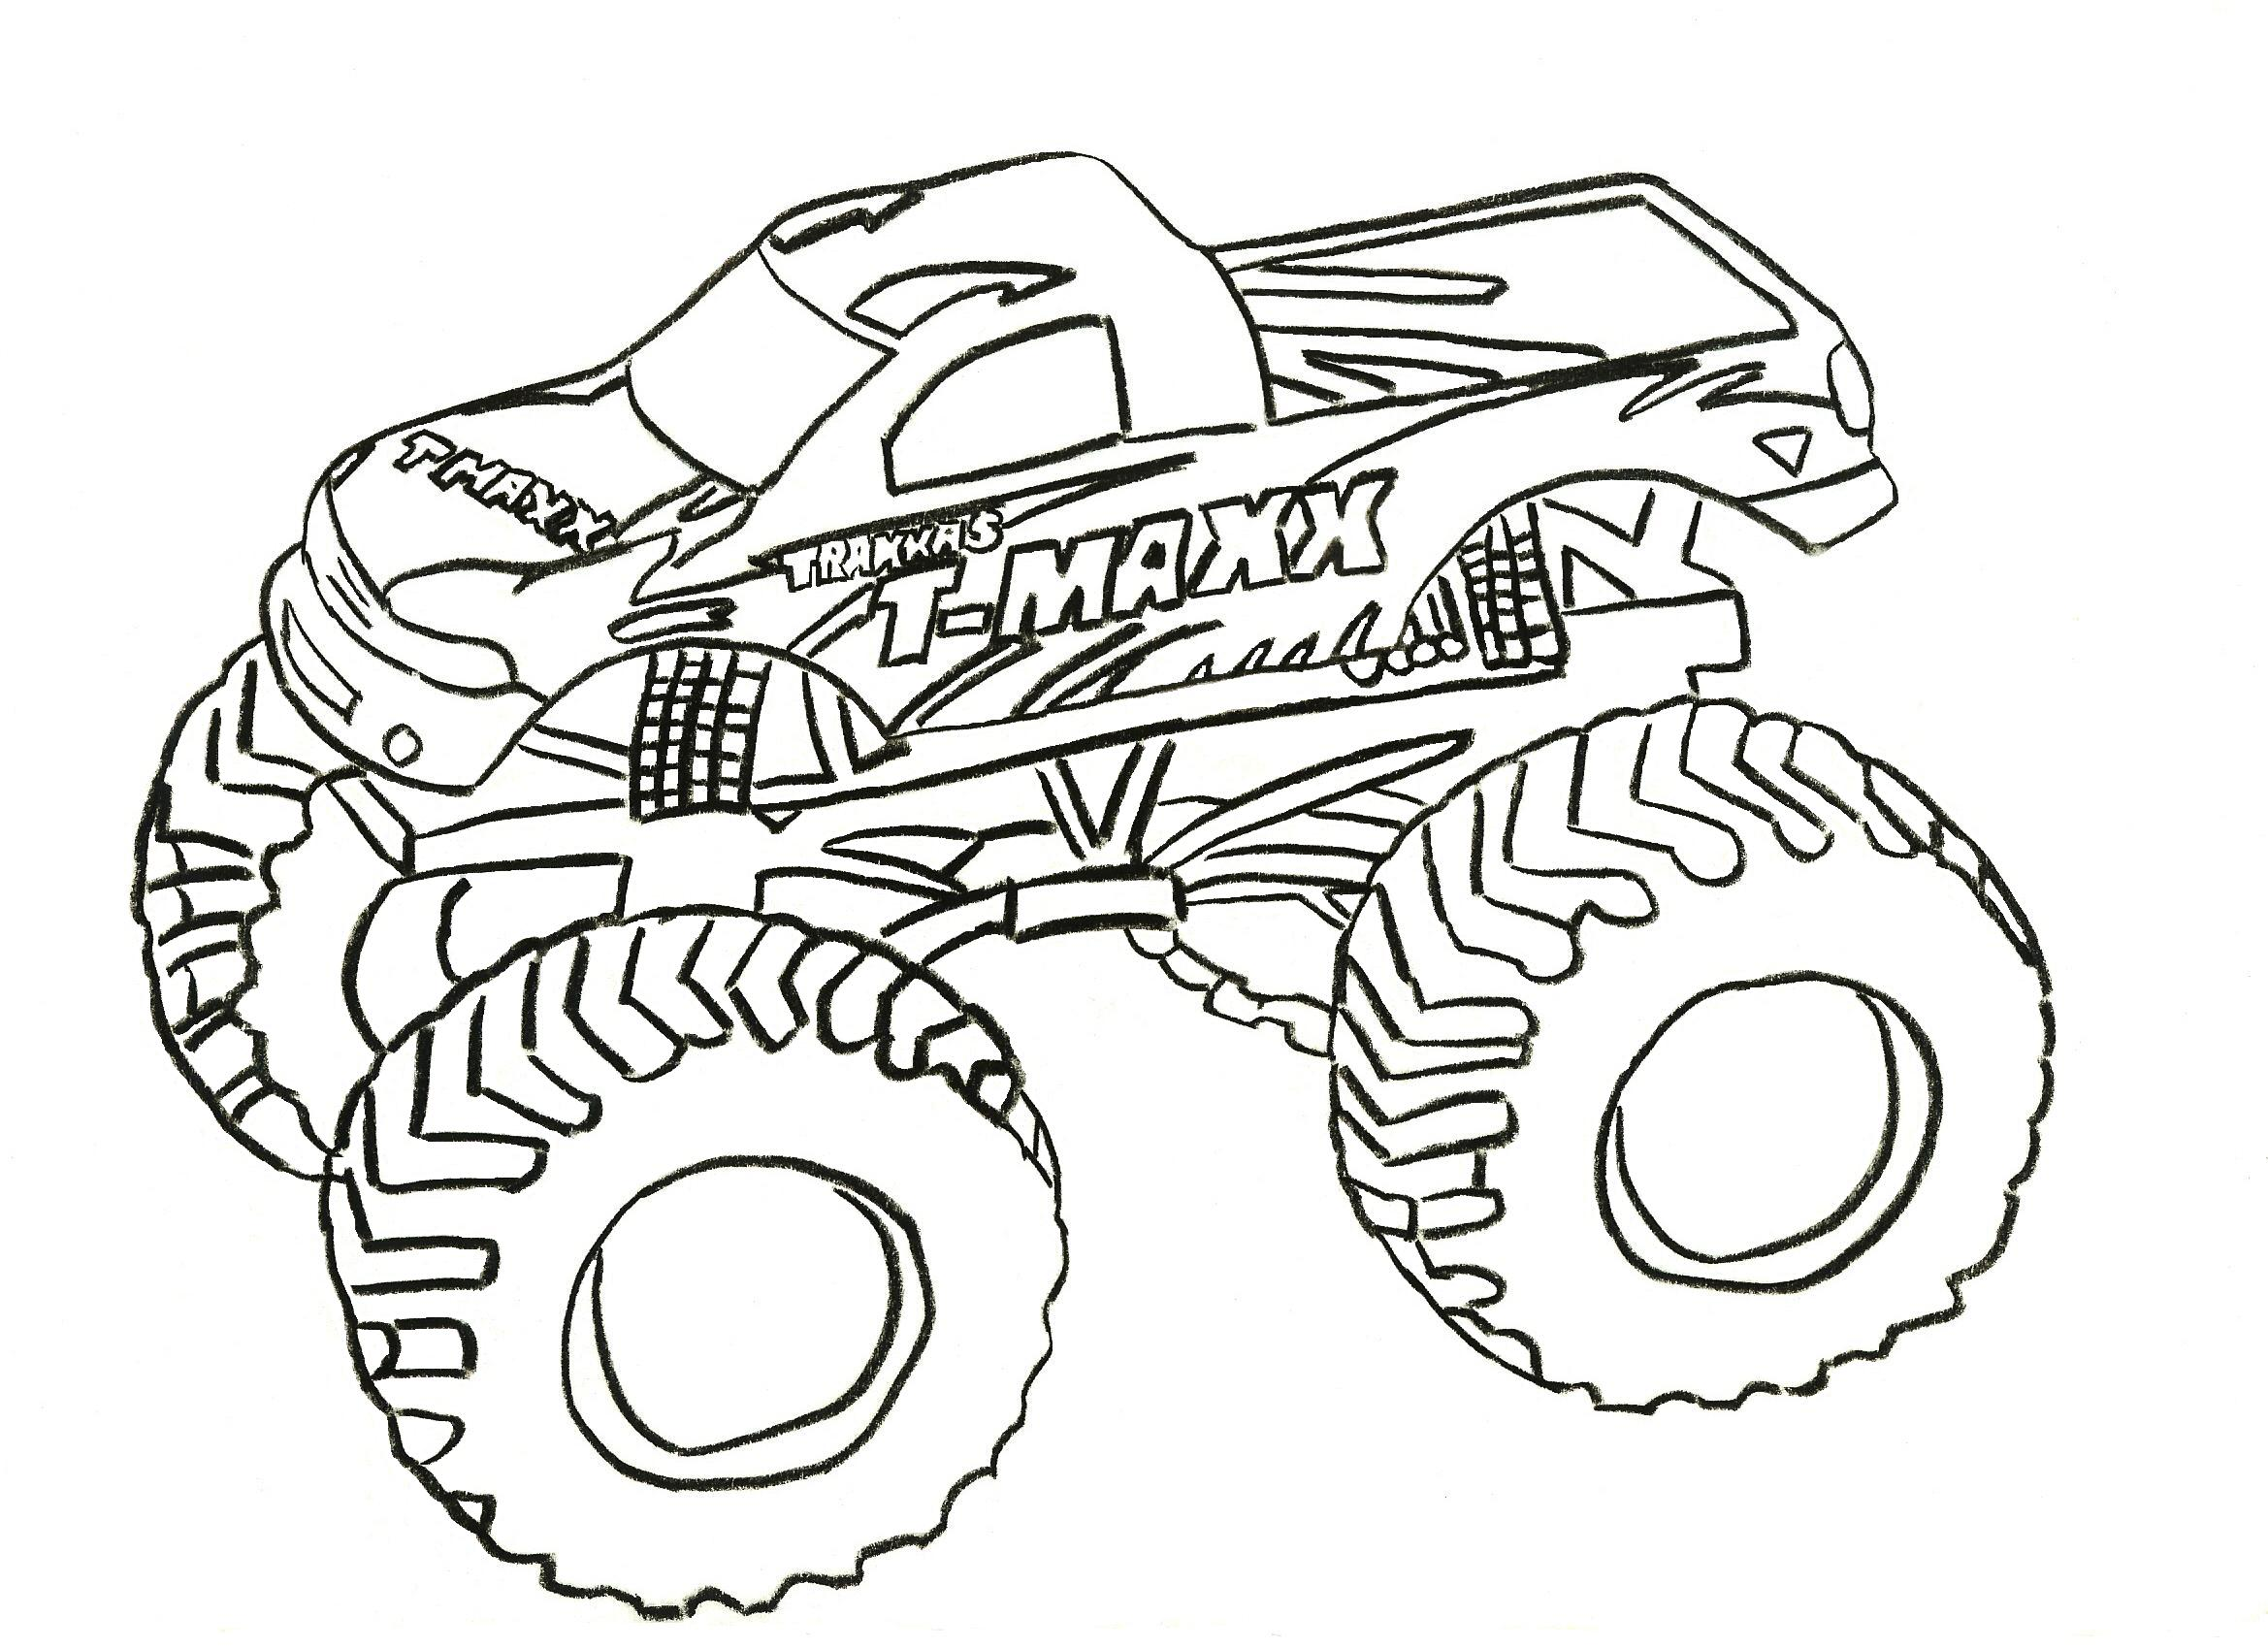 It is an image of Fabulous monster truck coloring pages.com